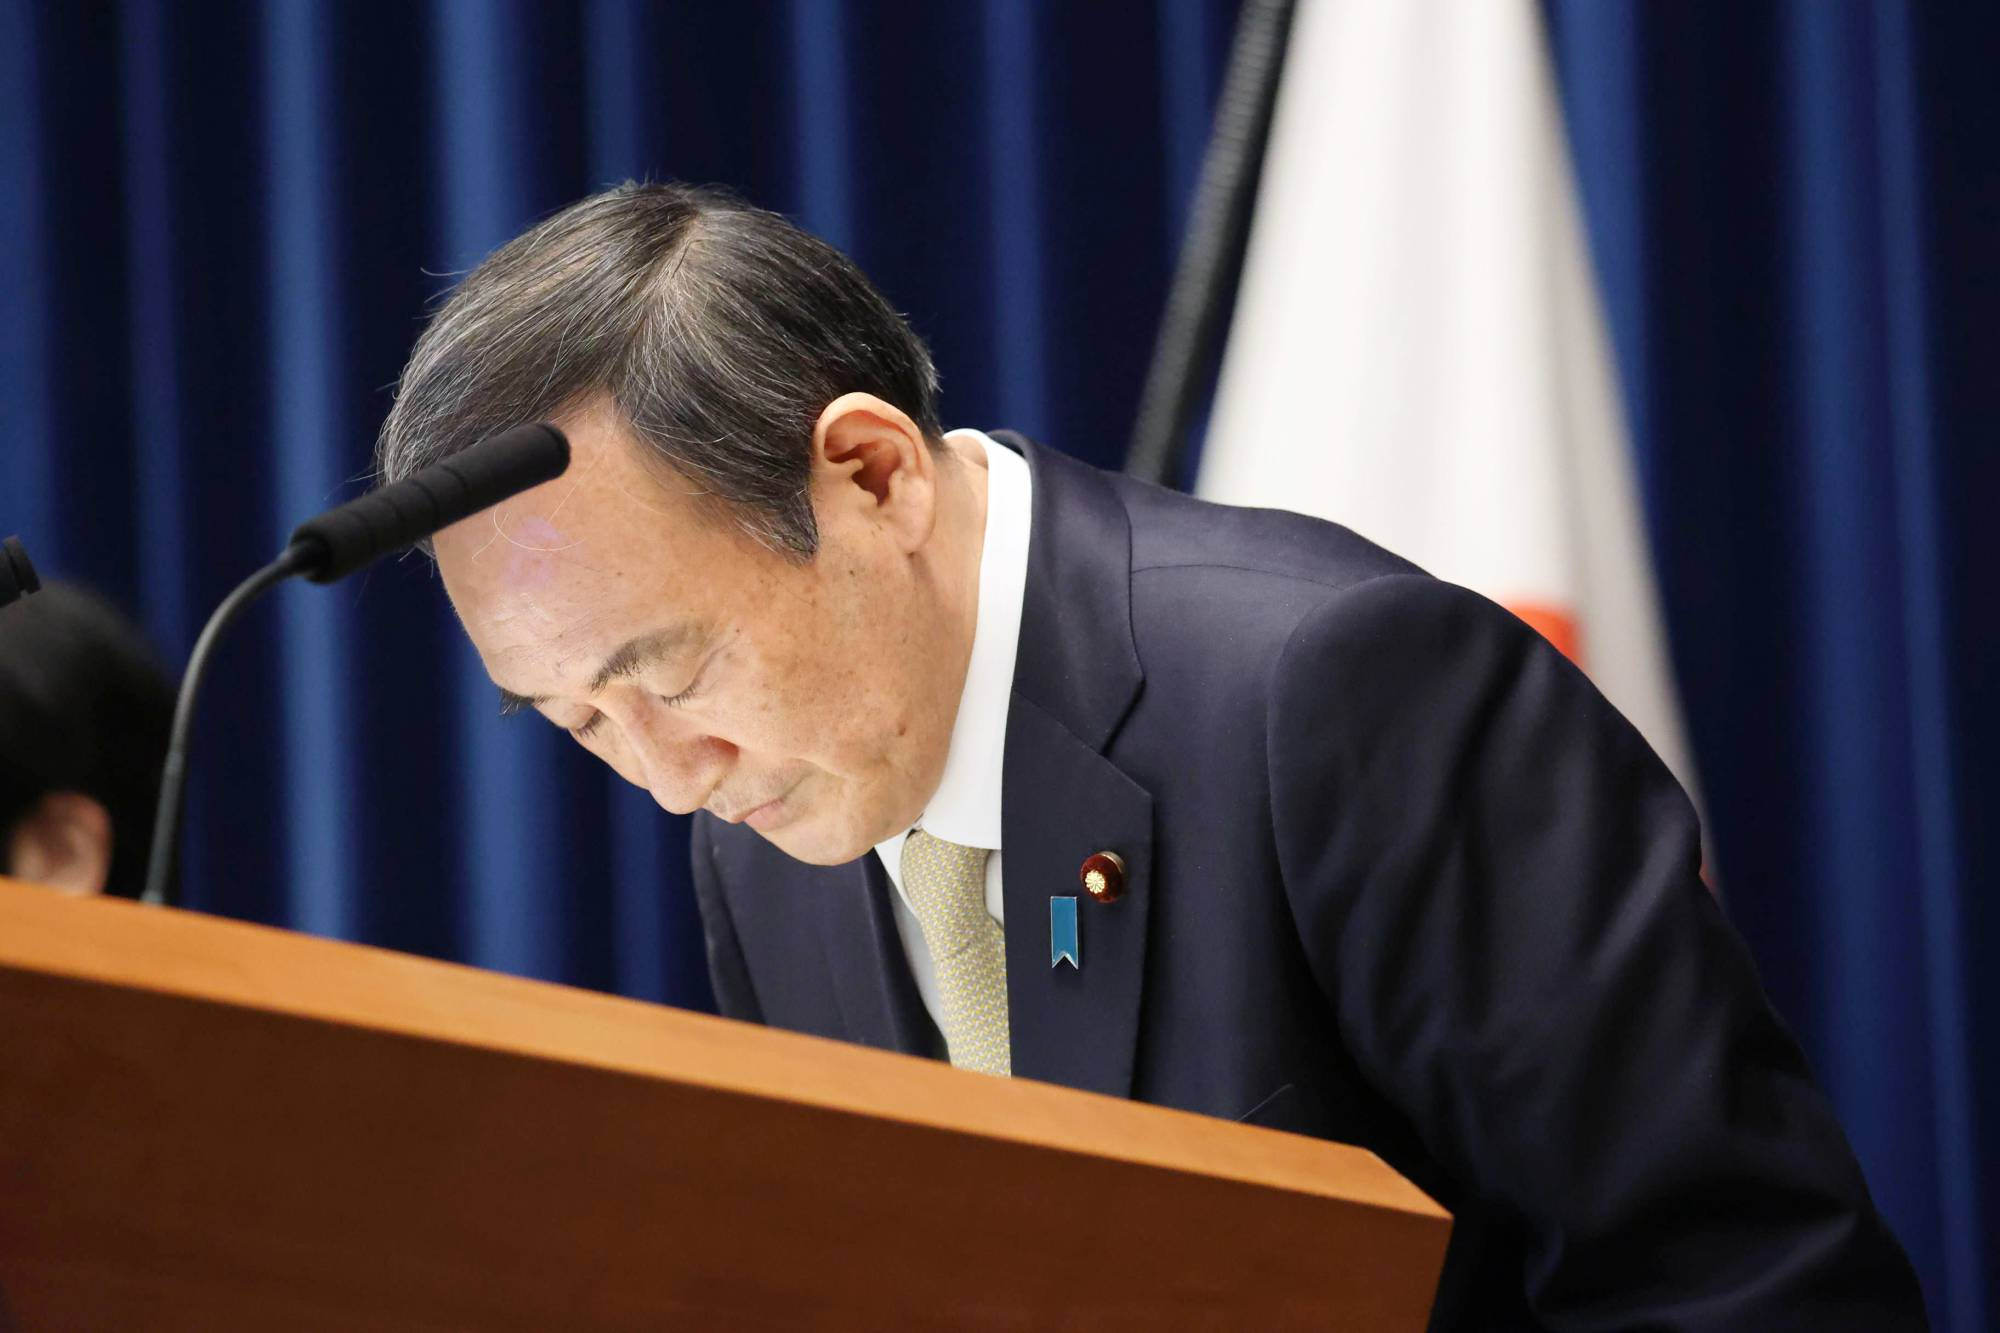 Prime Minister Yoshihide Suga apologizes for issuing the third coronavirus state of emergency during a news conference at the Prime Minister's Office on Friday. | POOL / VIA KYODO